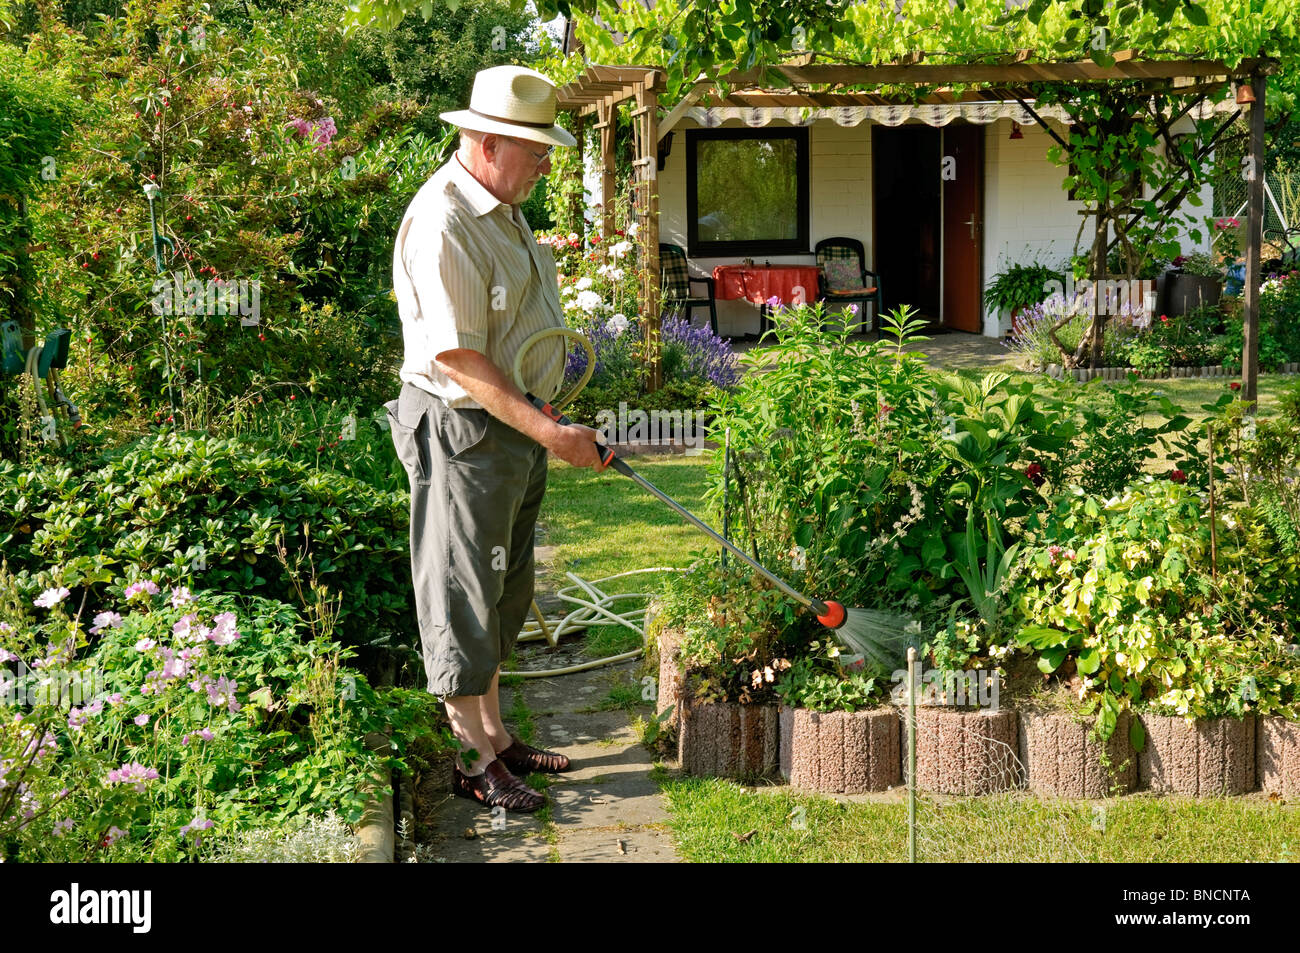 Man 50s 60s watering allotment garden, Germany - Stock Image